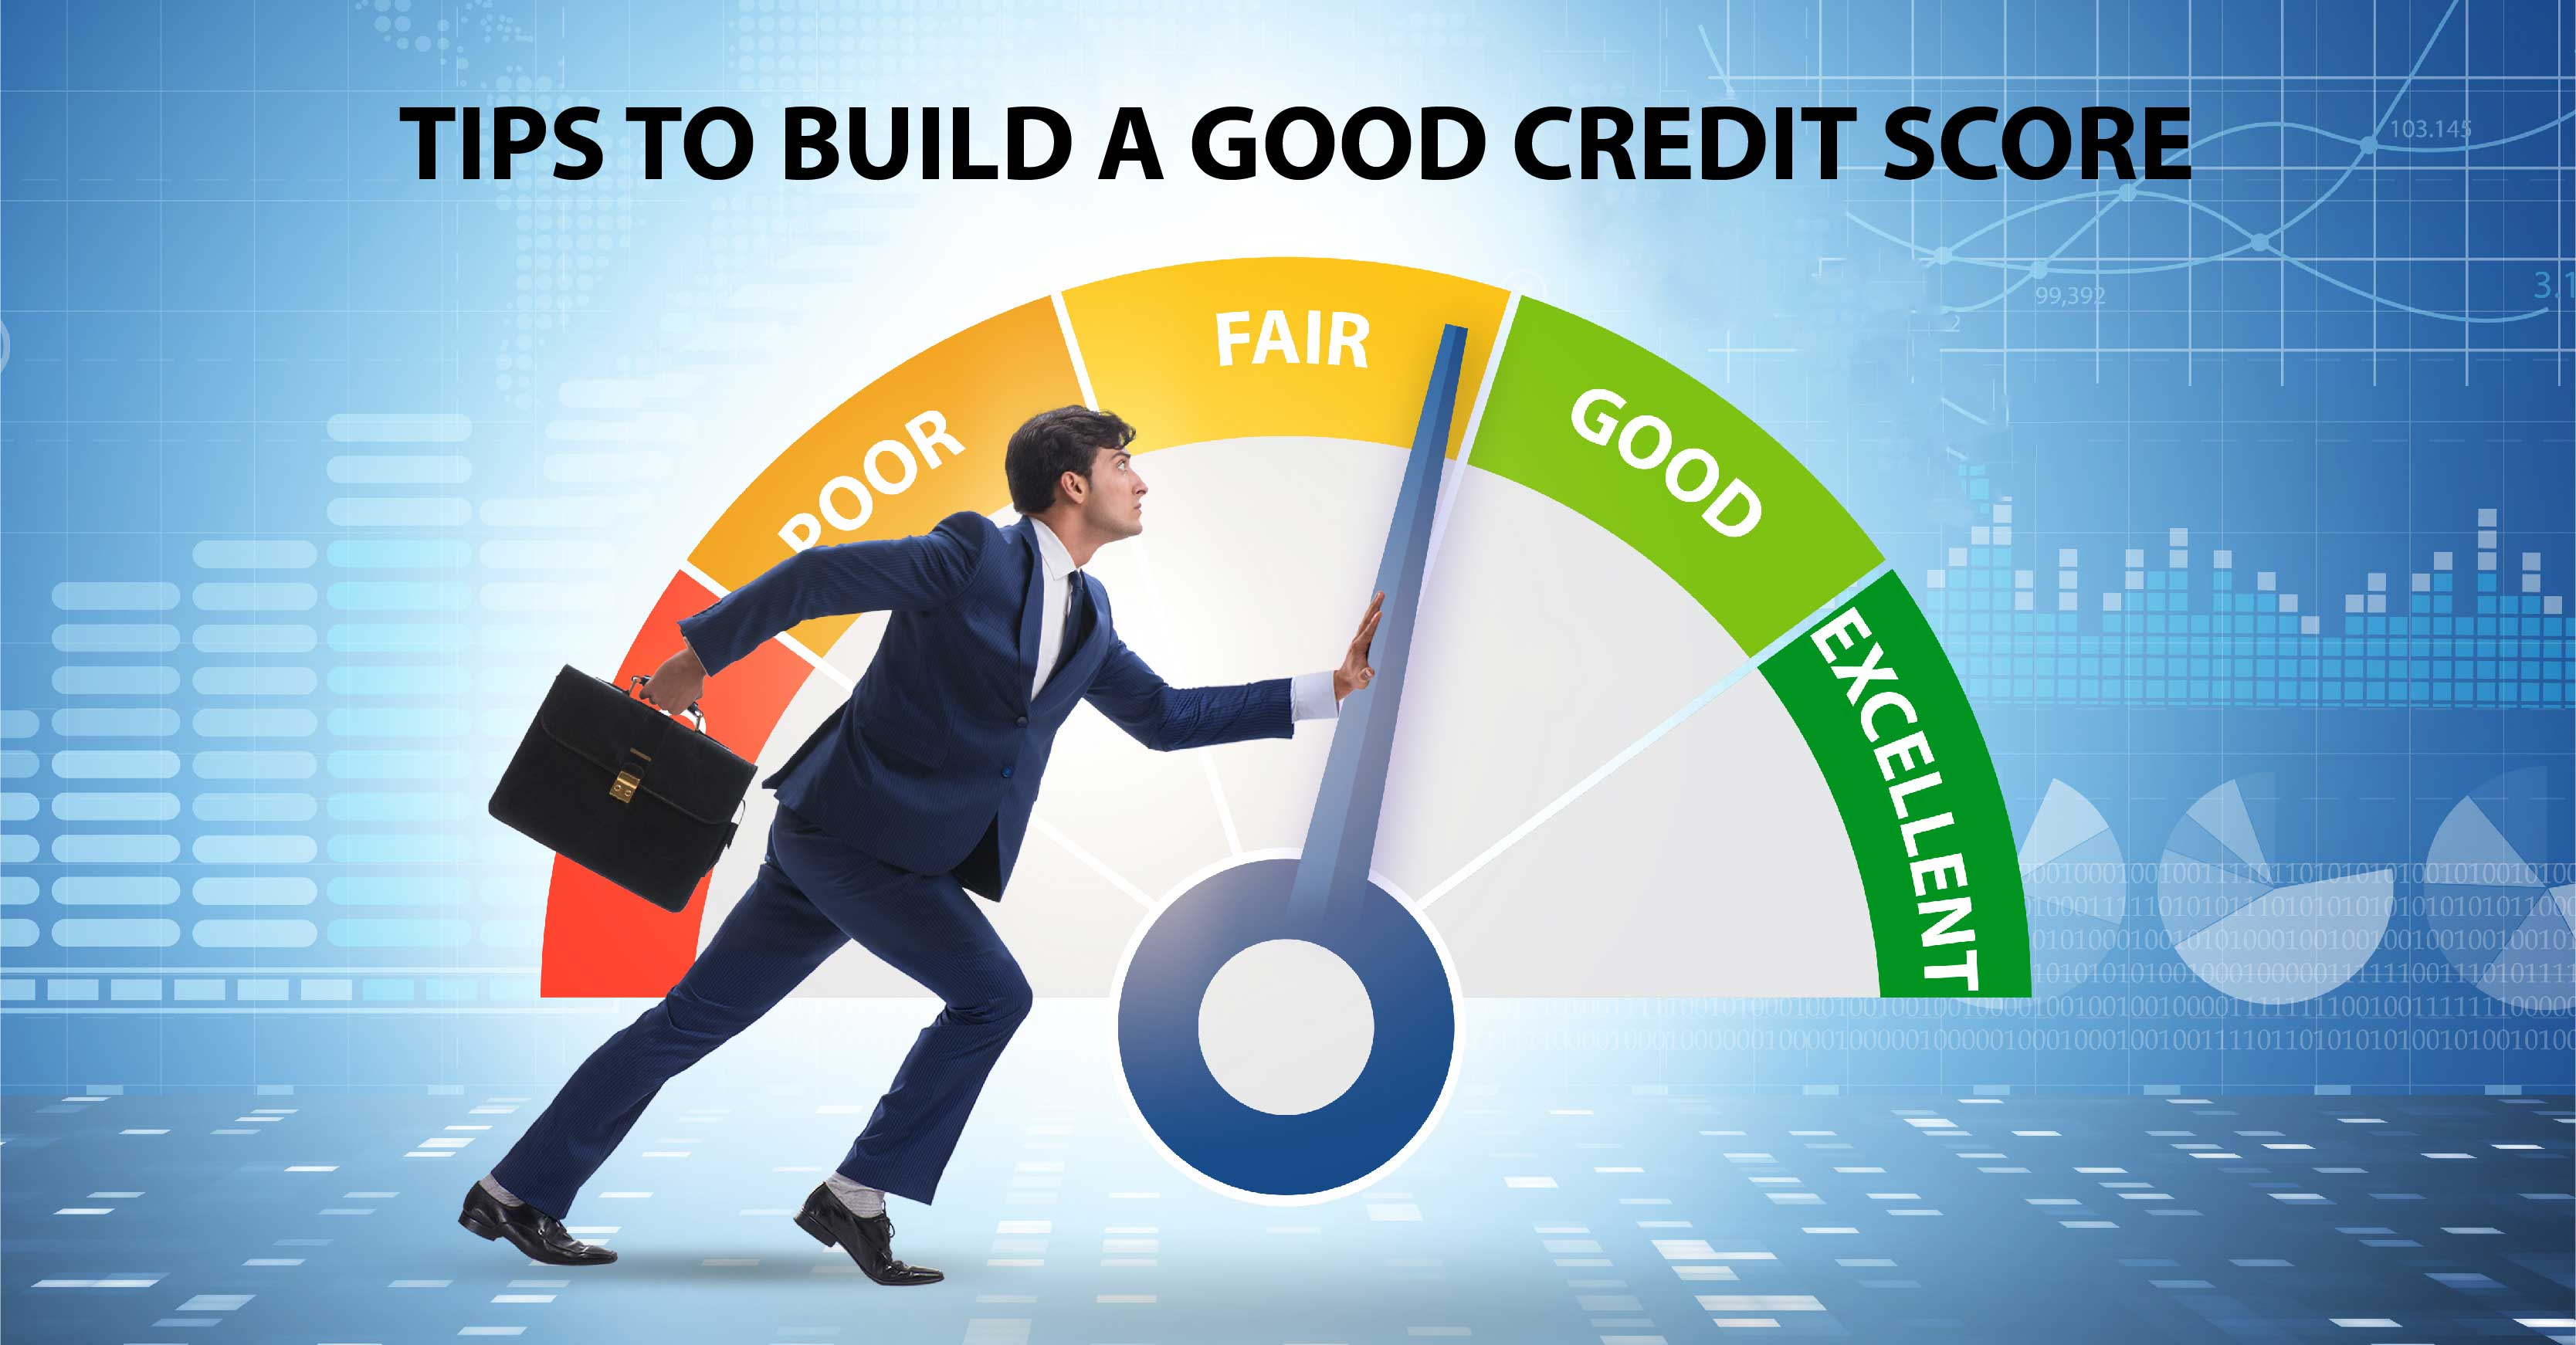 TIPS TO BUILD A GOOD CREDIT SCORE